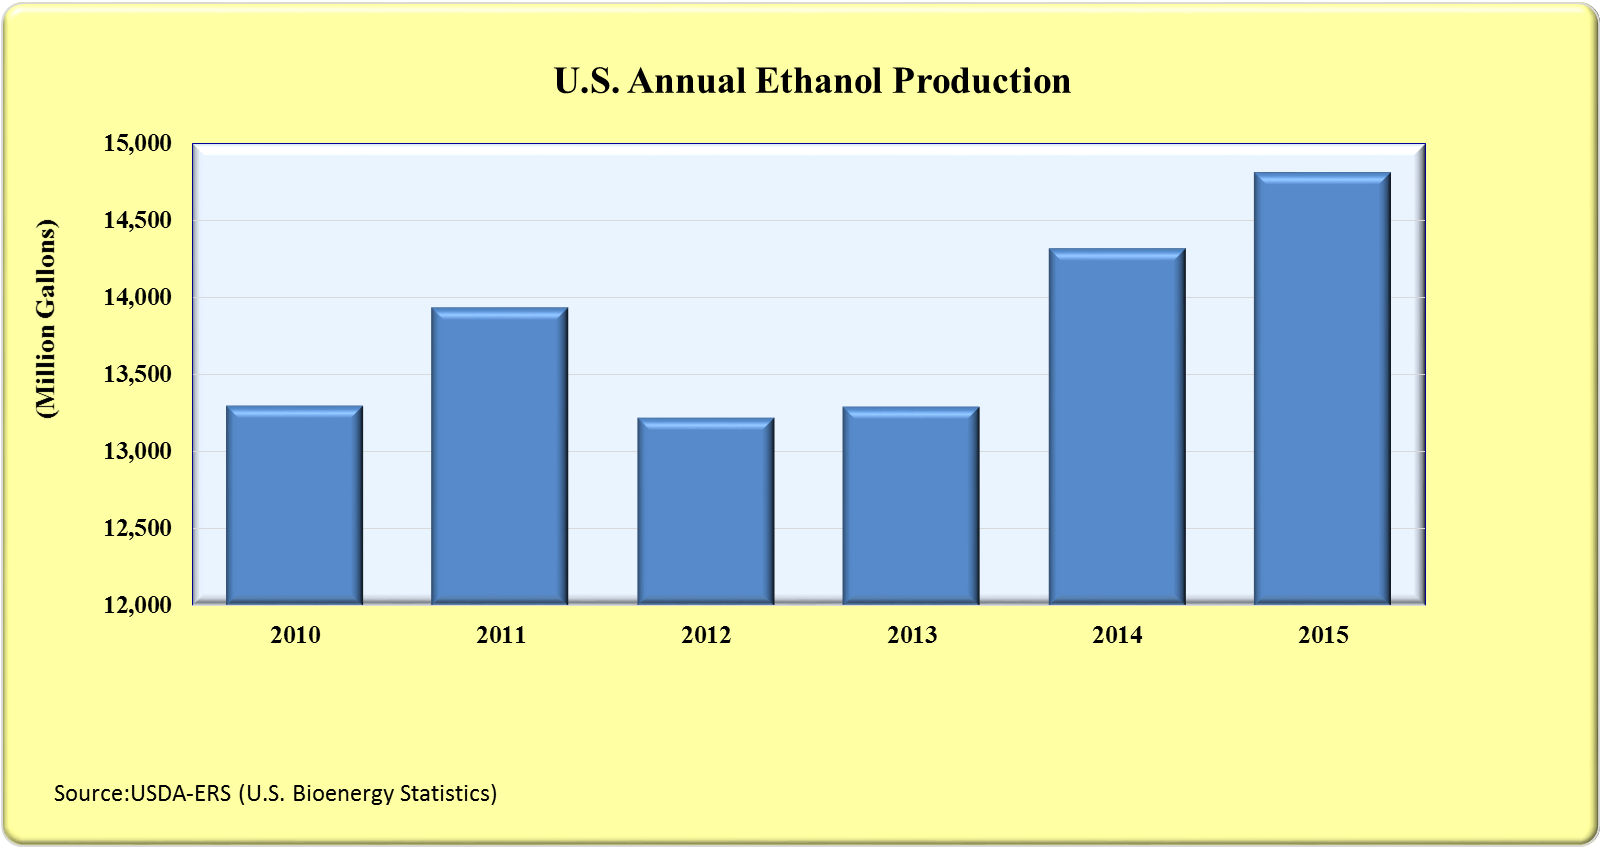 U.S. Annual Ethanol Production